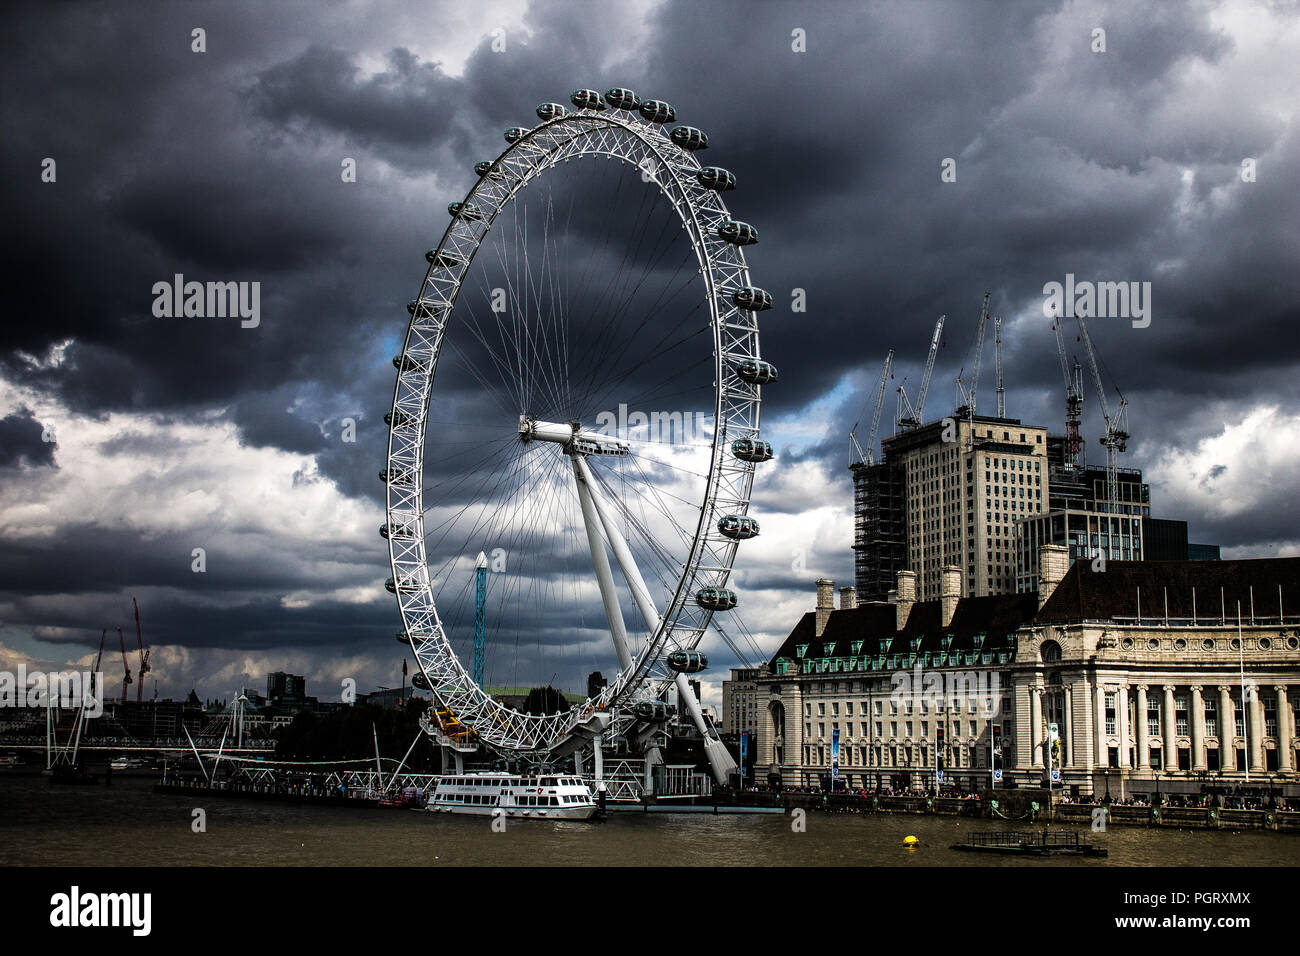 London Eye, London Photo Stock